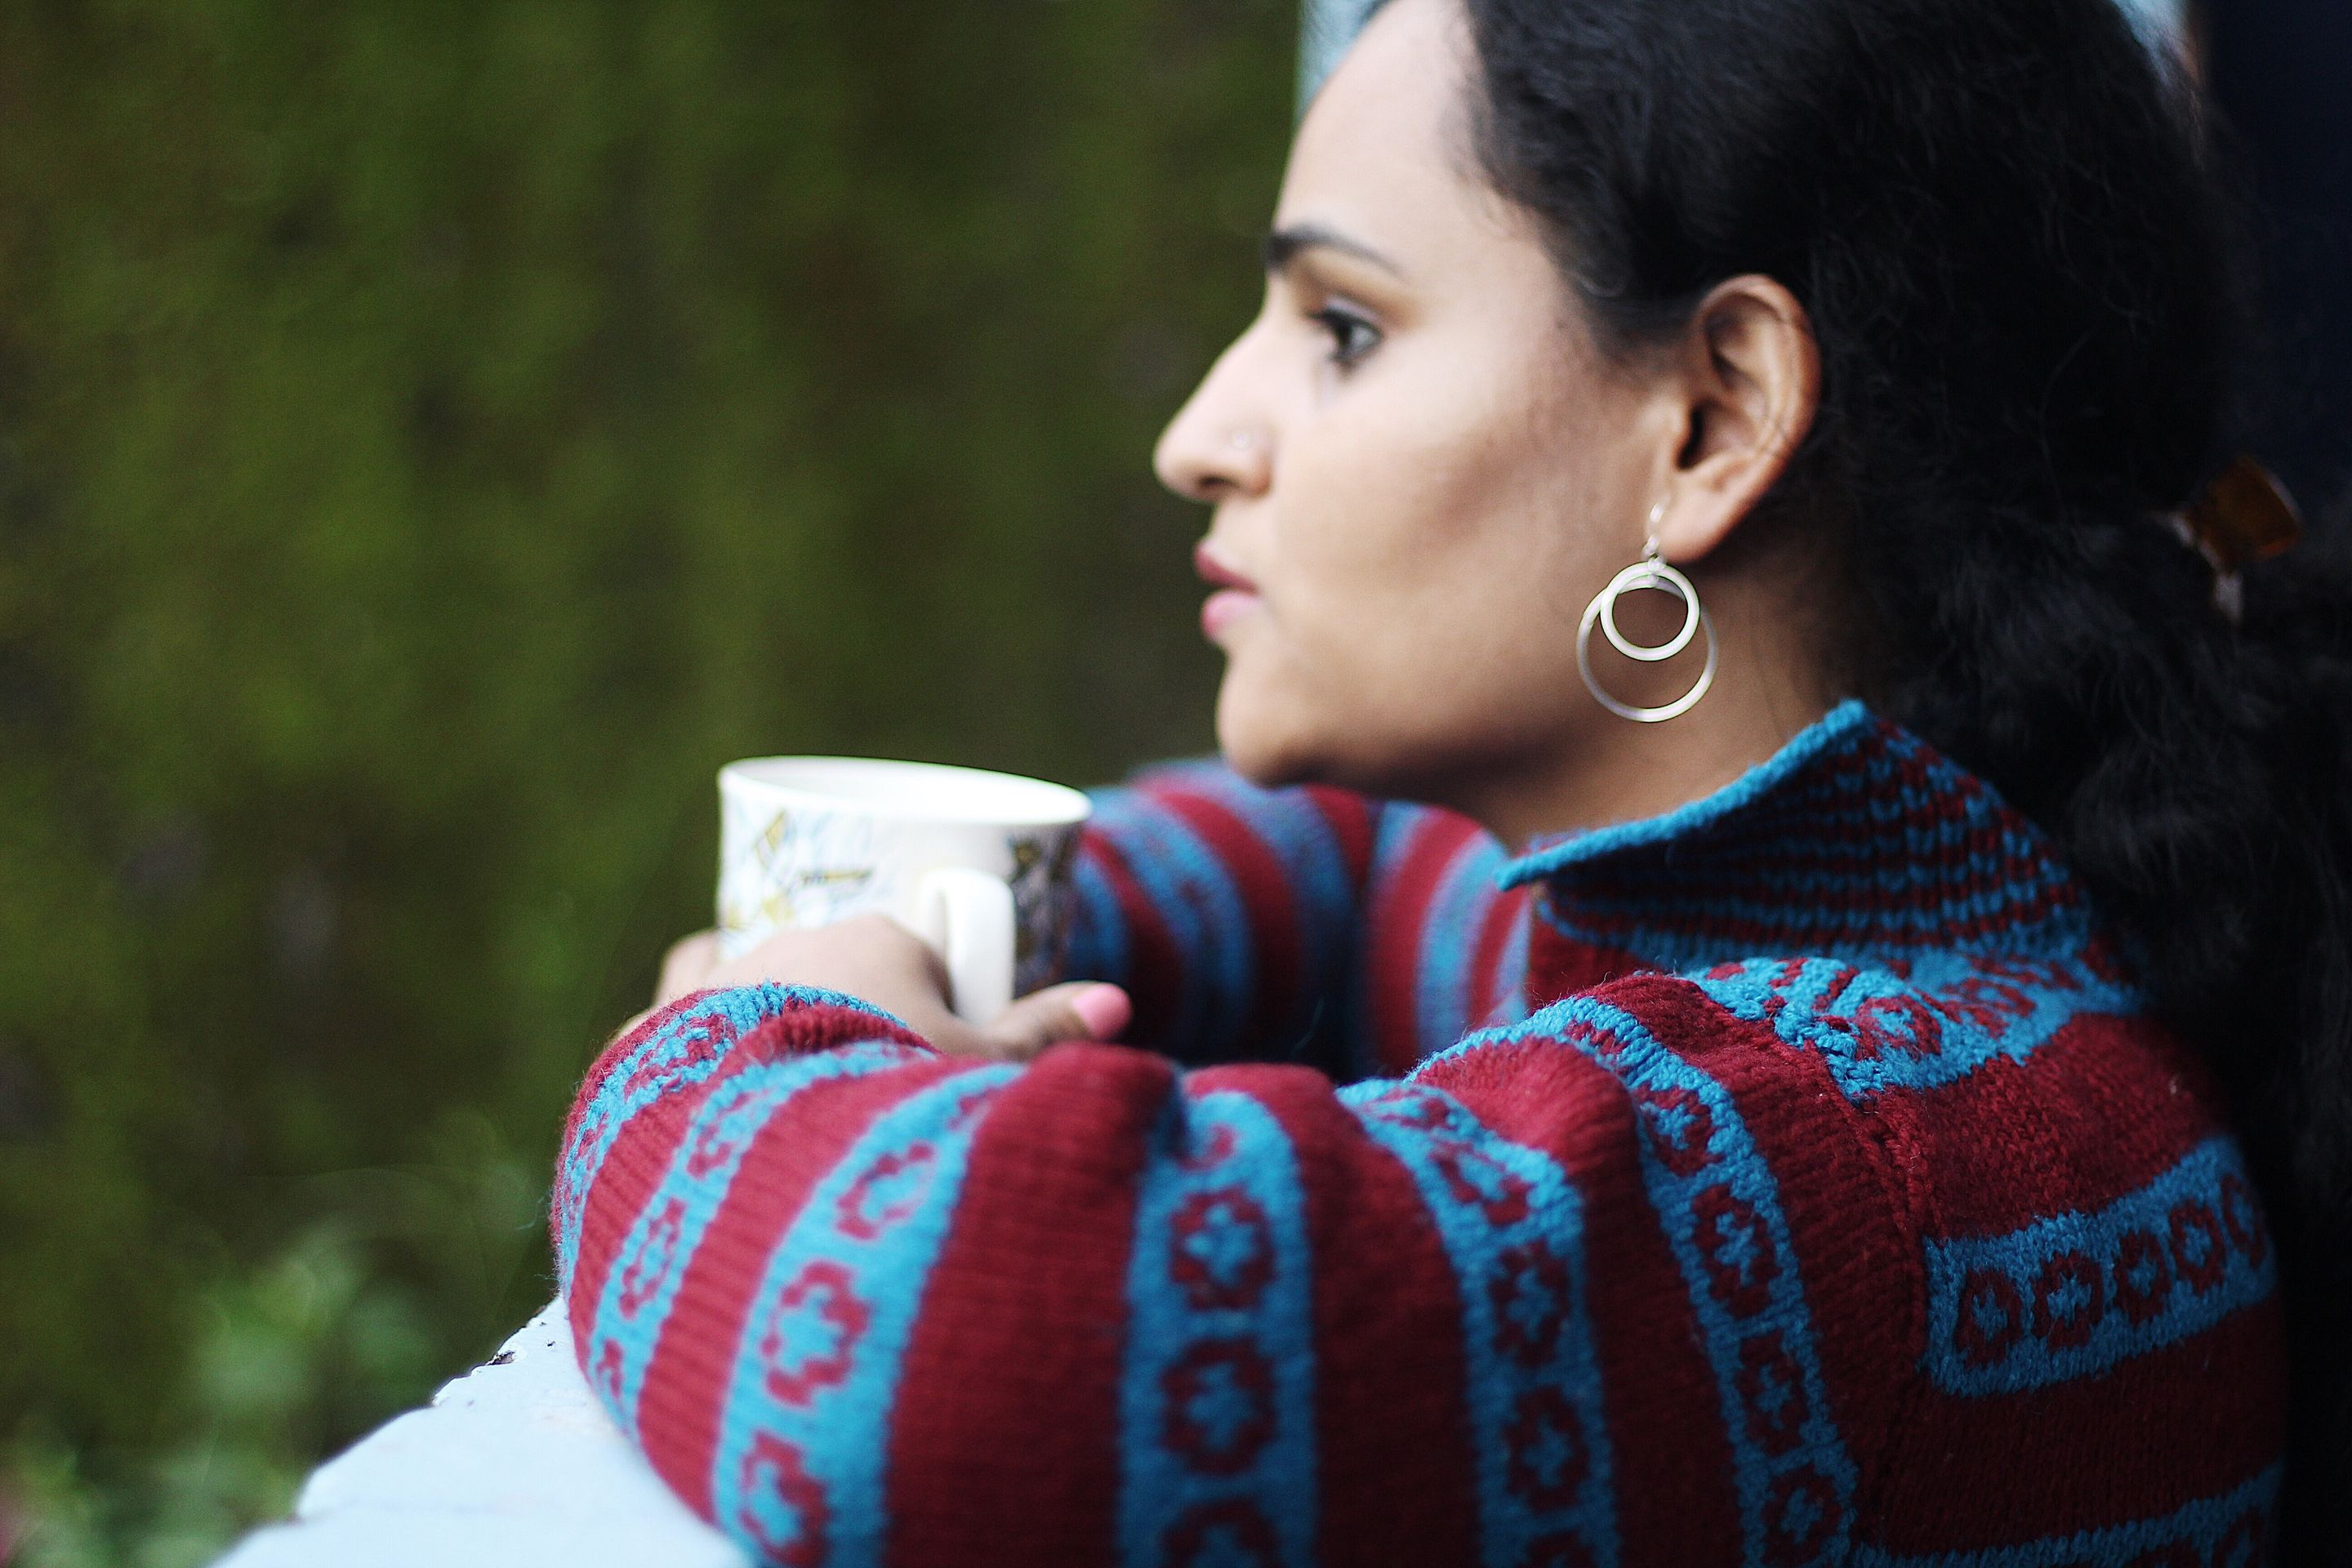 Woman looks thoughtfully out of a window with a cup of coffee in her hand